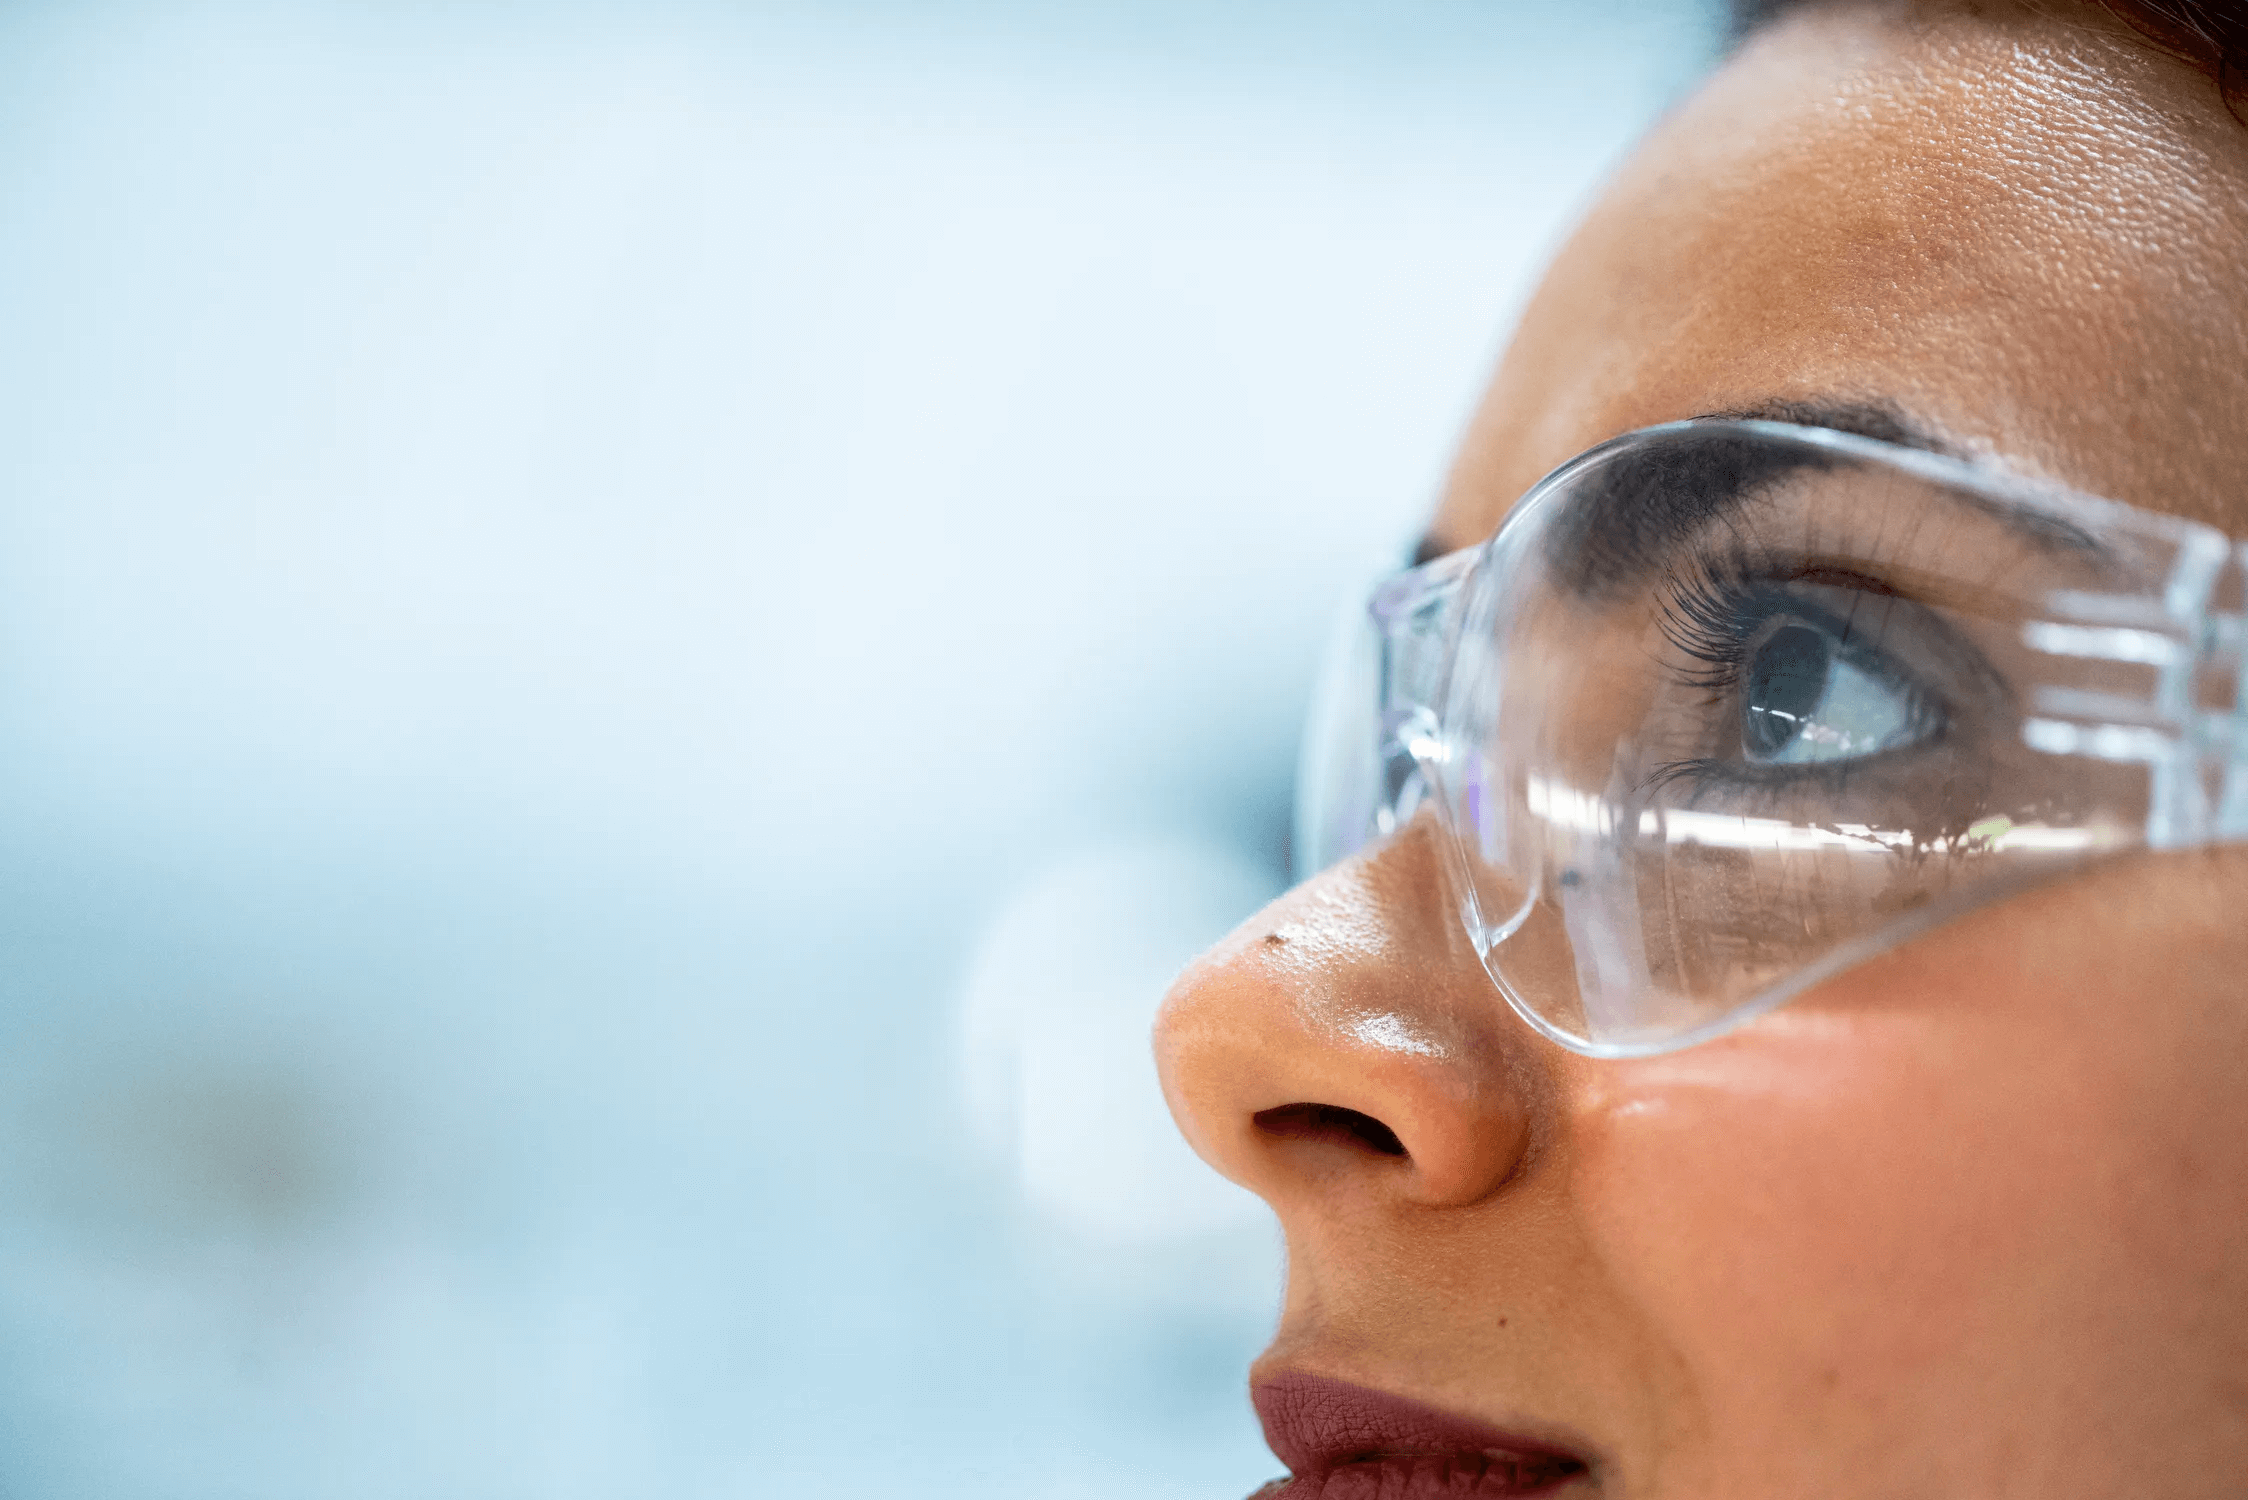 Close up side view of woman wearing safety glasses